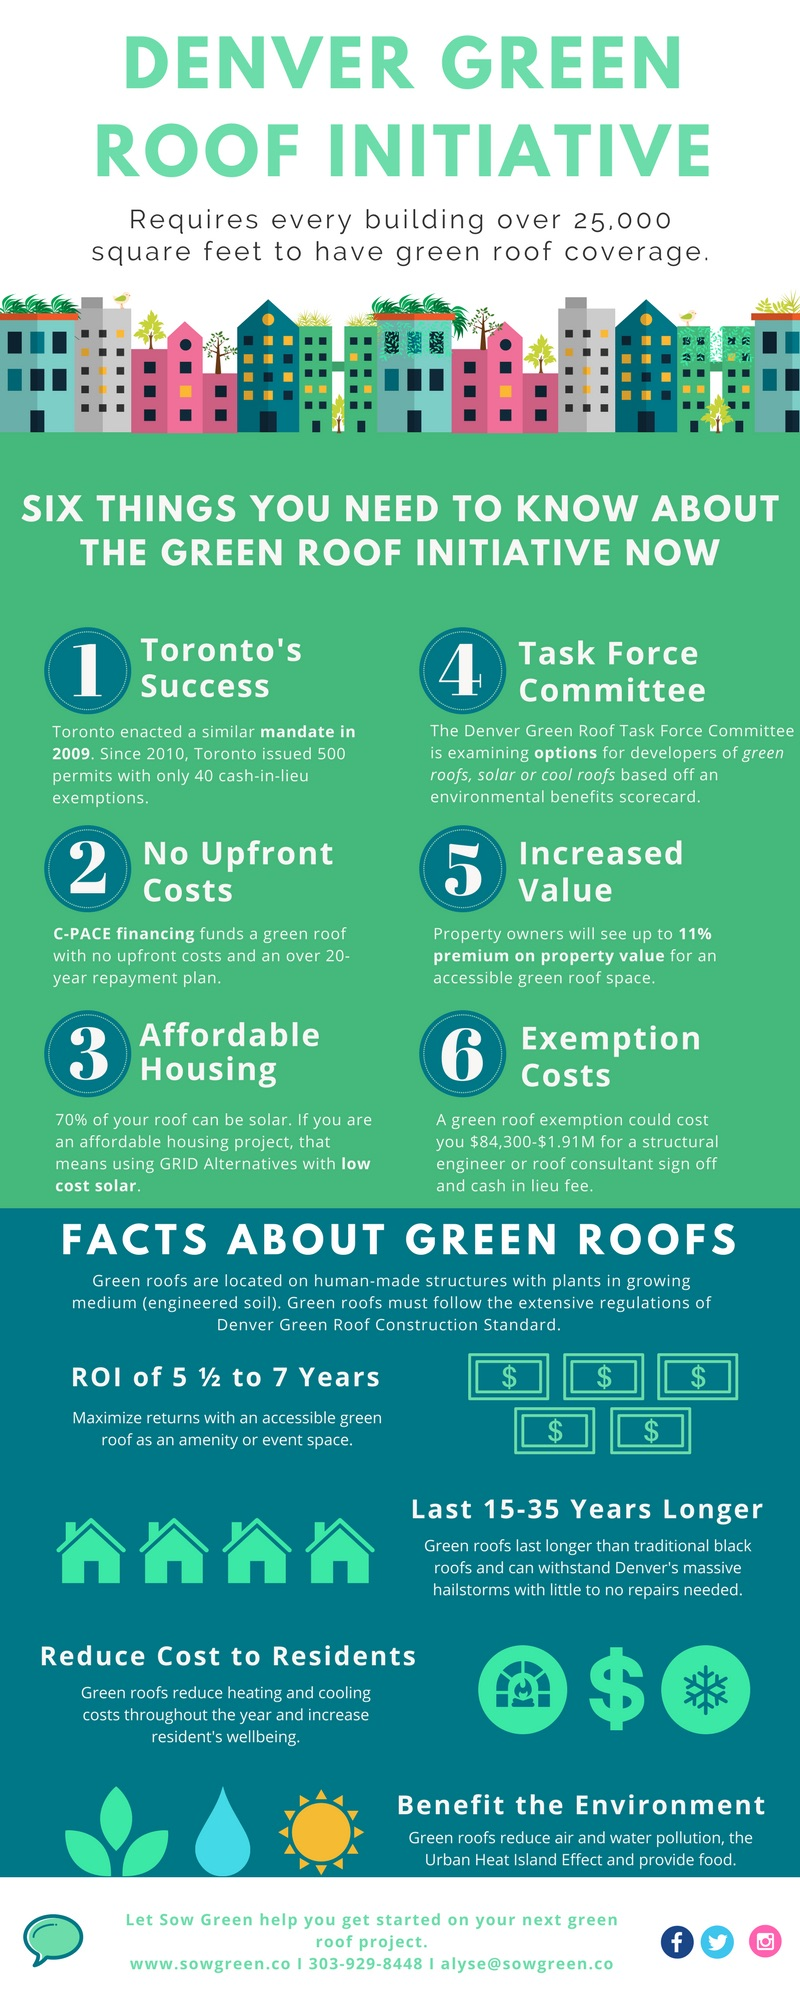 Denver Green Roof Initiative - Things You Need to Know.jpg